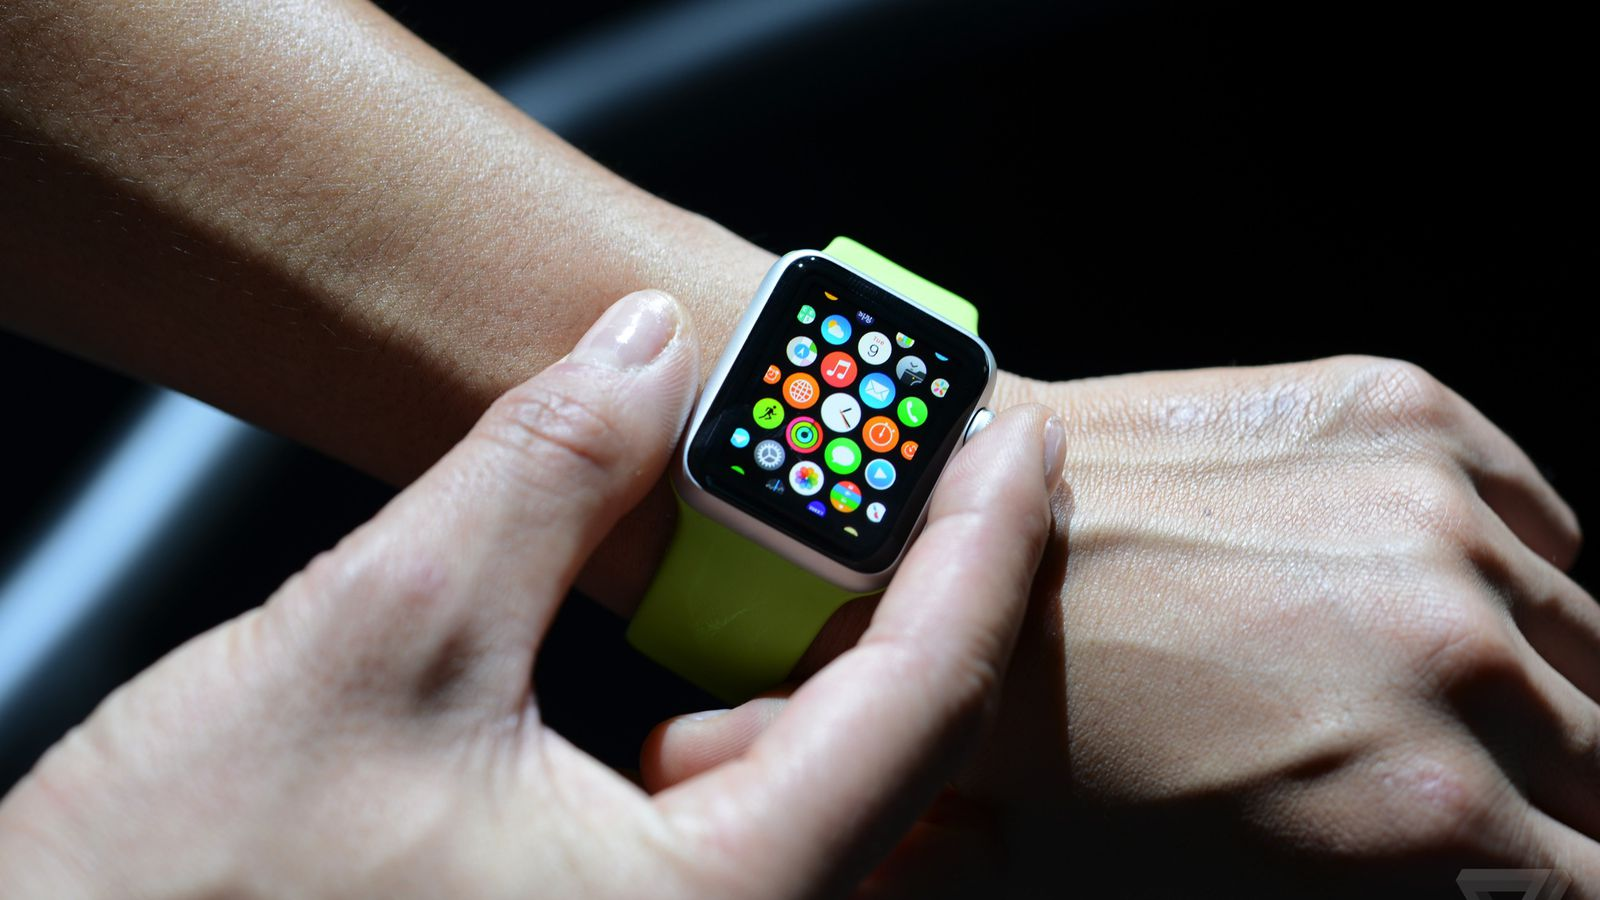 Apple Watch is getting a Theater Mode in next update